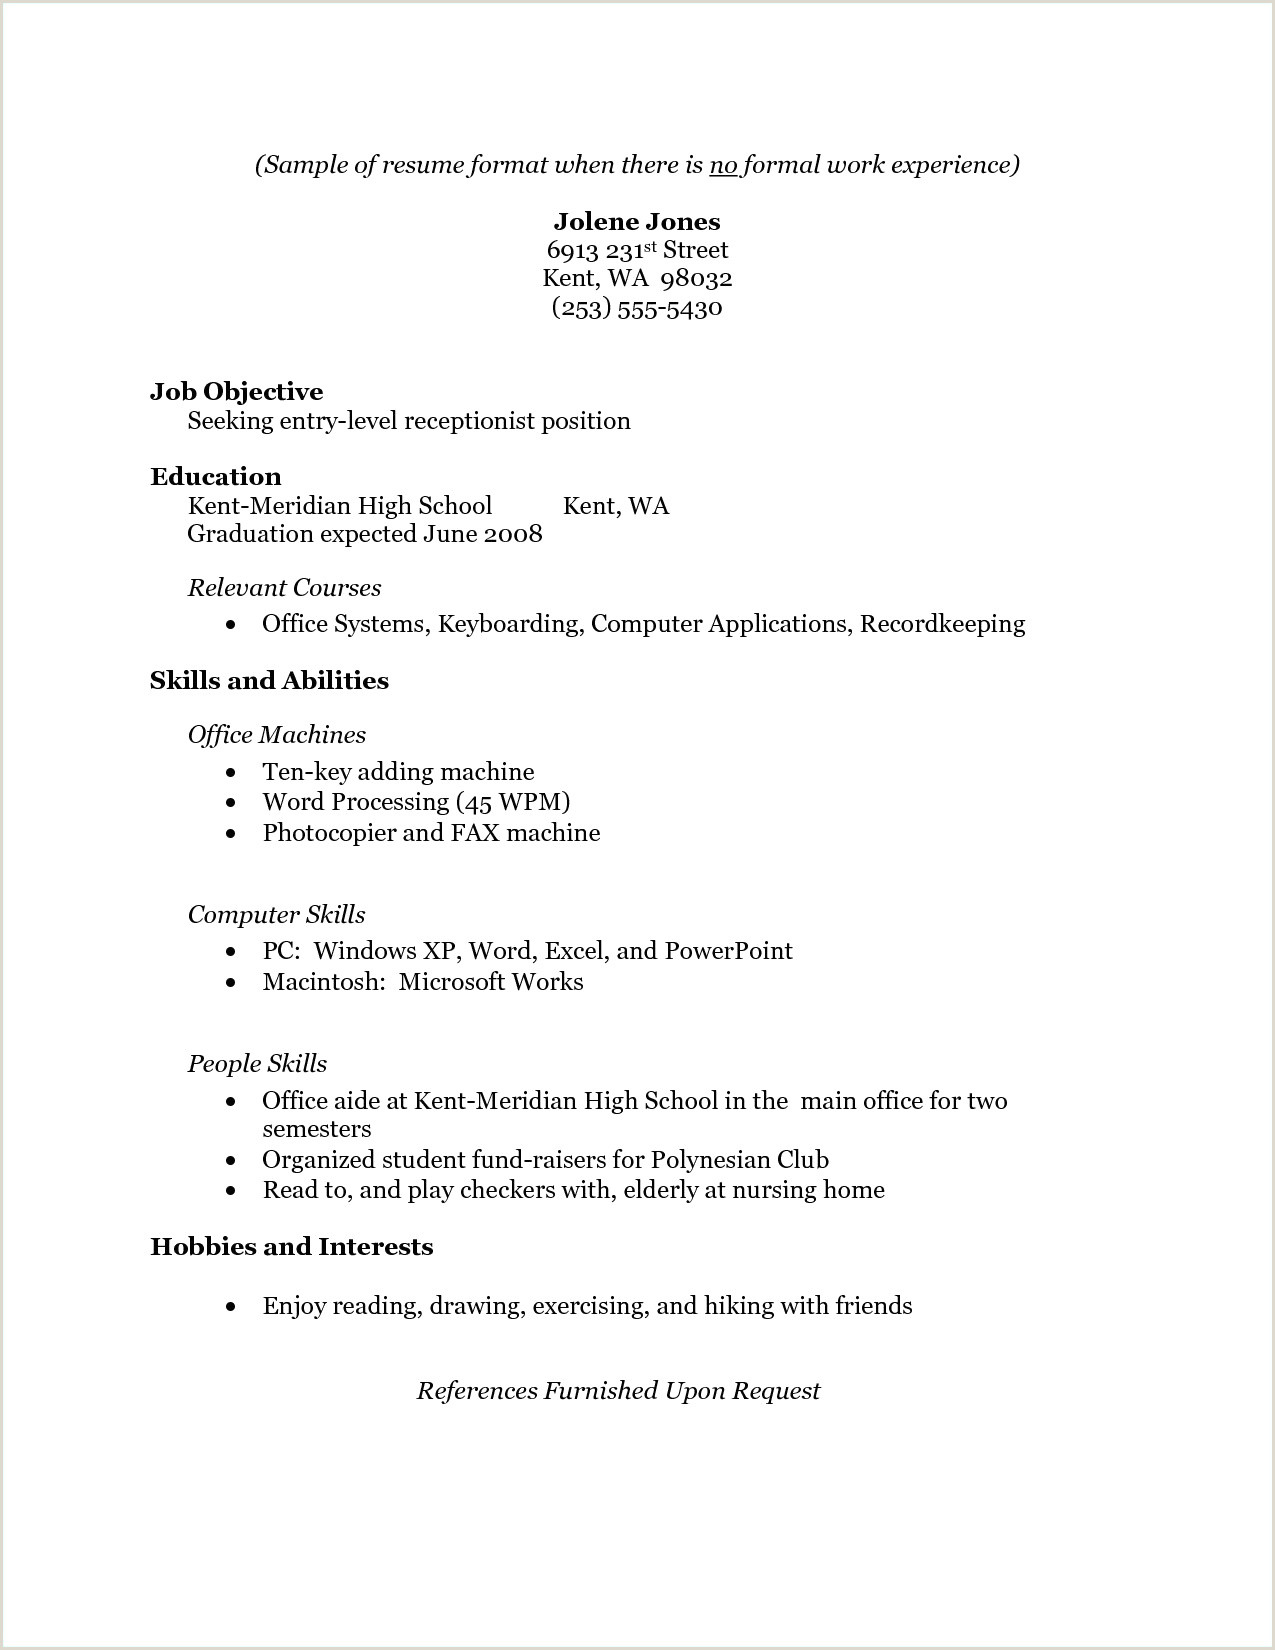 Resume format for Older Job Seekers My Perfect Cv Collections De Free Resume Template Ekla Kerlann